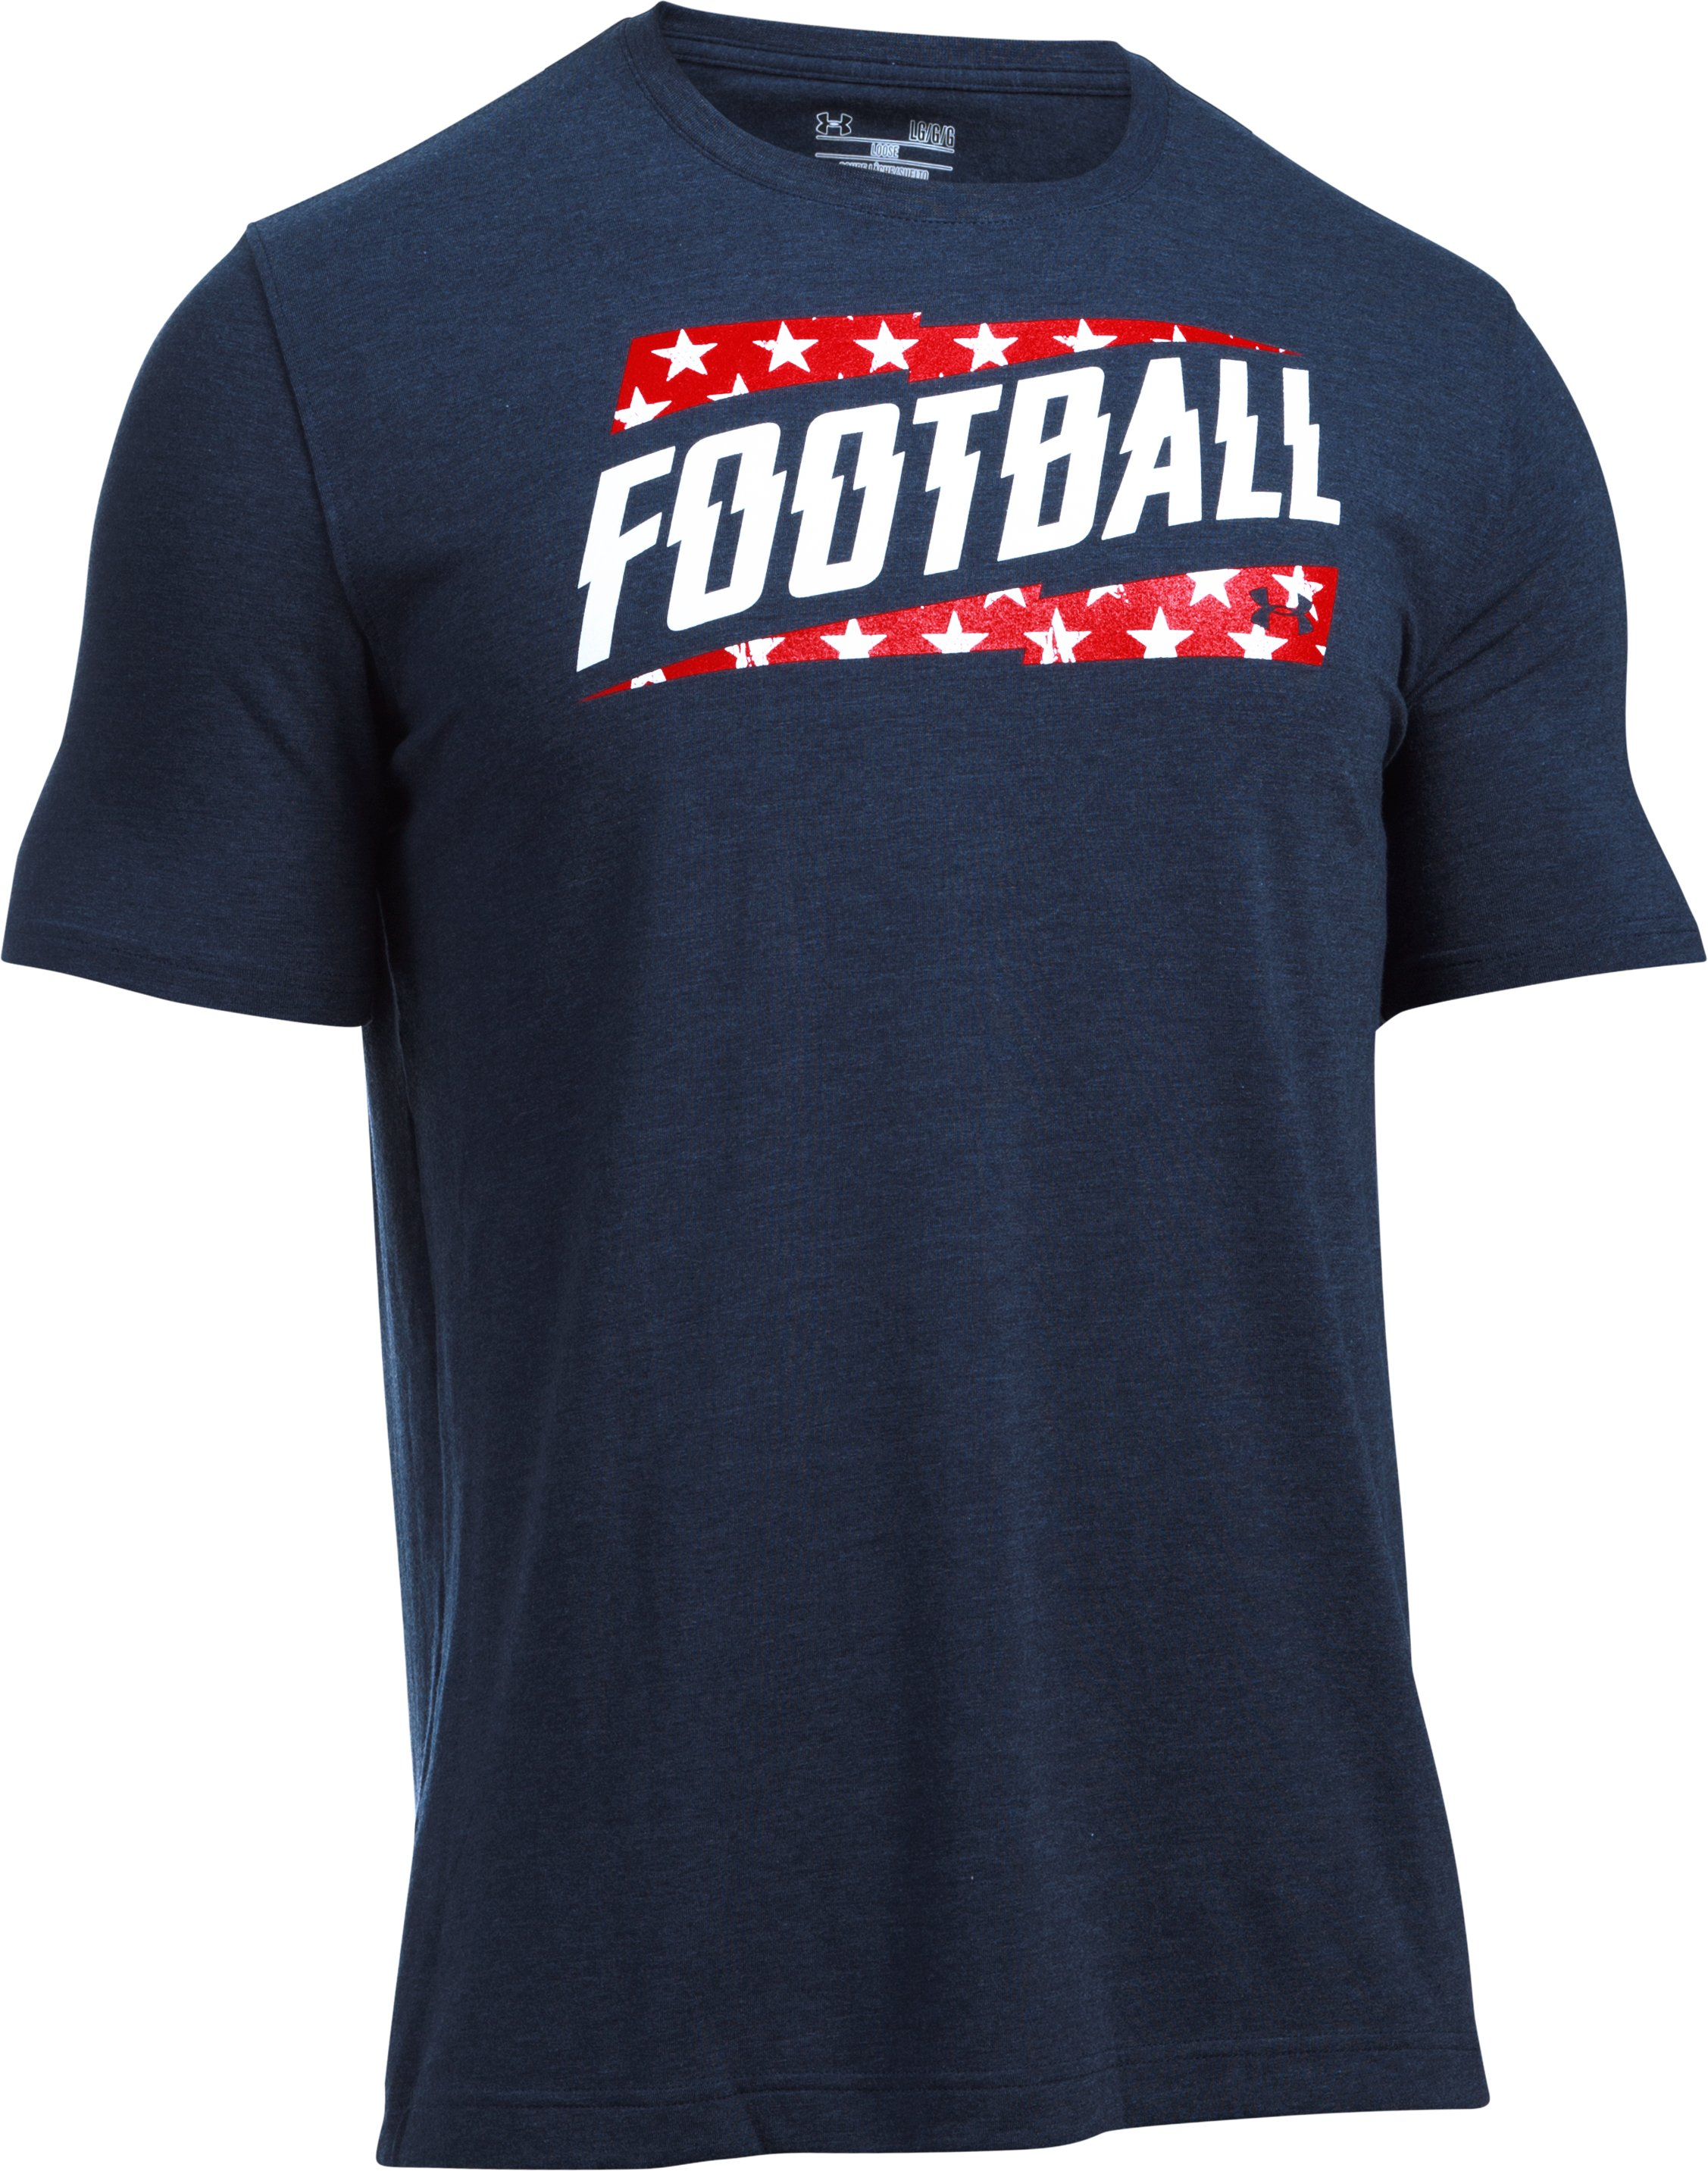 Men's UA Football Independence T-Shirt, Midnight Navy,